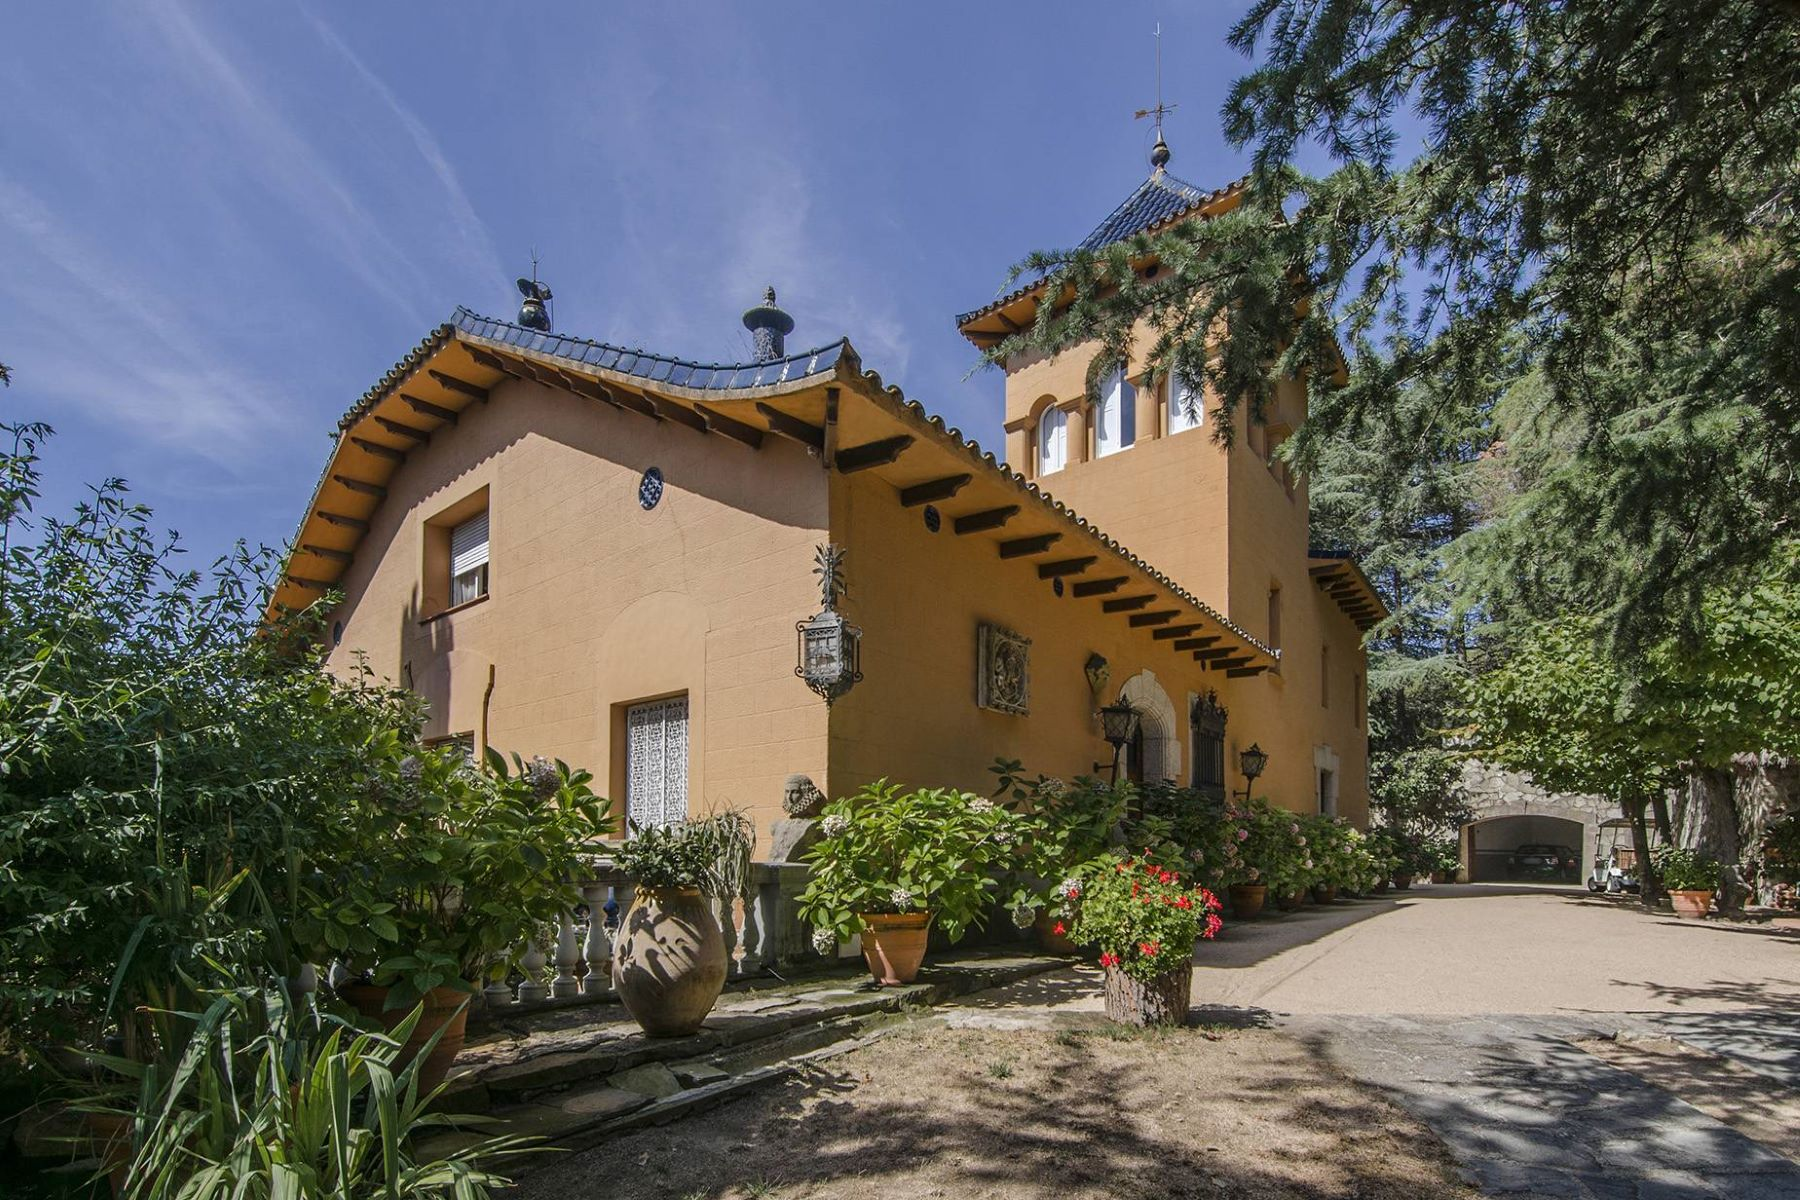 Single Family Home for Sale at A piece of paradise with 4ha of land in the Maresme Sant Andreu De Llavaneres, Barcelona, 08392 Spain